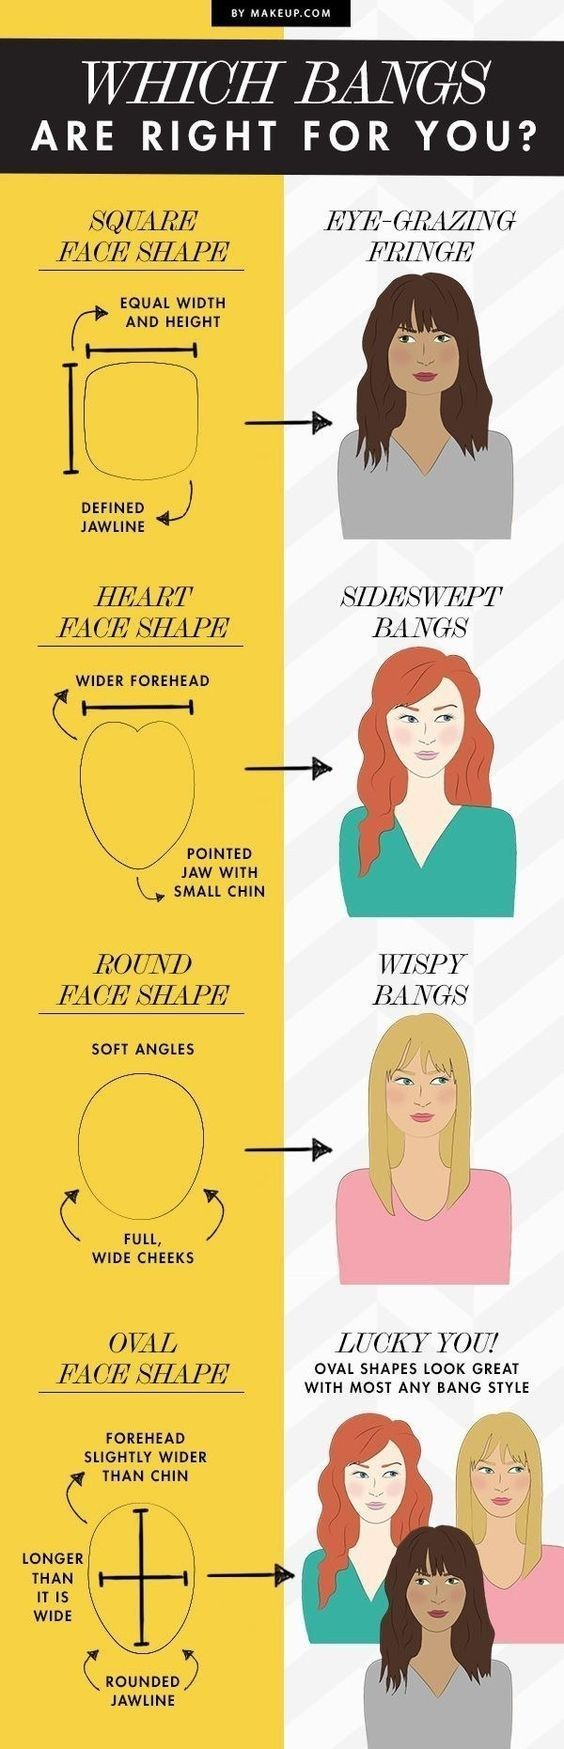 Bang Theory: Which Bangs Will Work for You? - From makeup.com :: @makeupdotcom :: | Glamour Shots Photography << hair tips and tricks >>